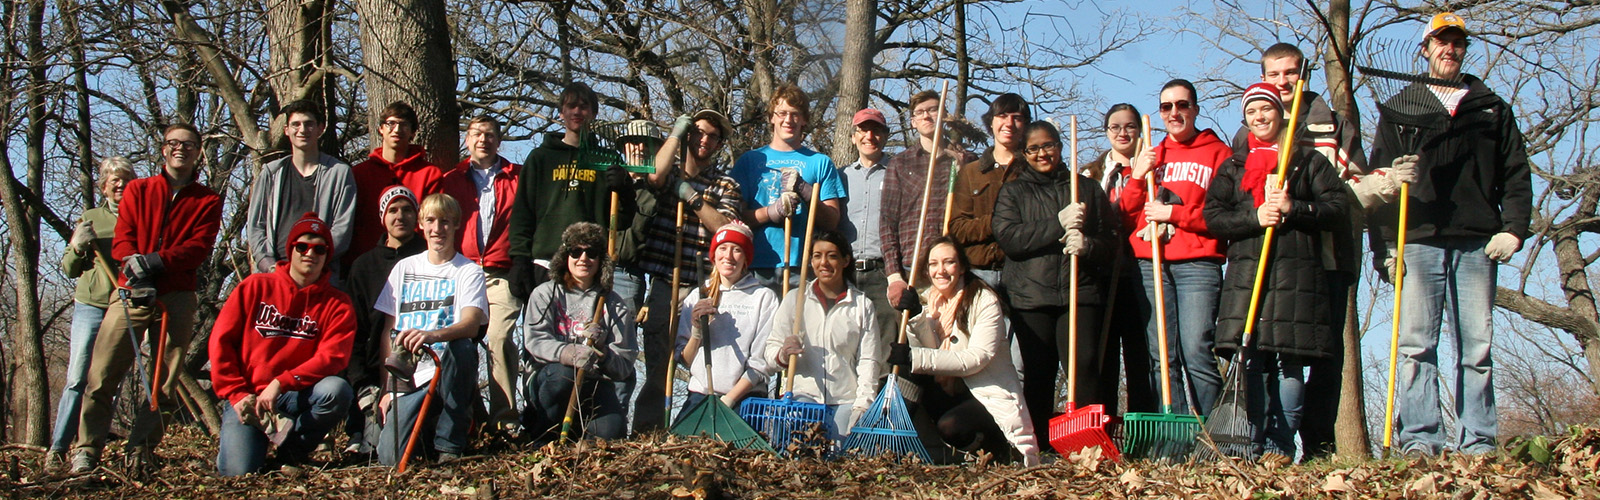 A large group of volunteers pose for a photo holding rakes and other tools.